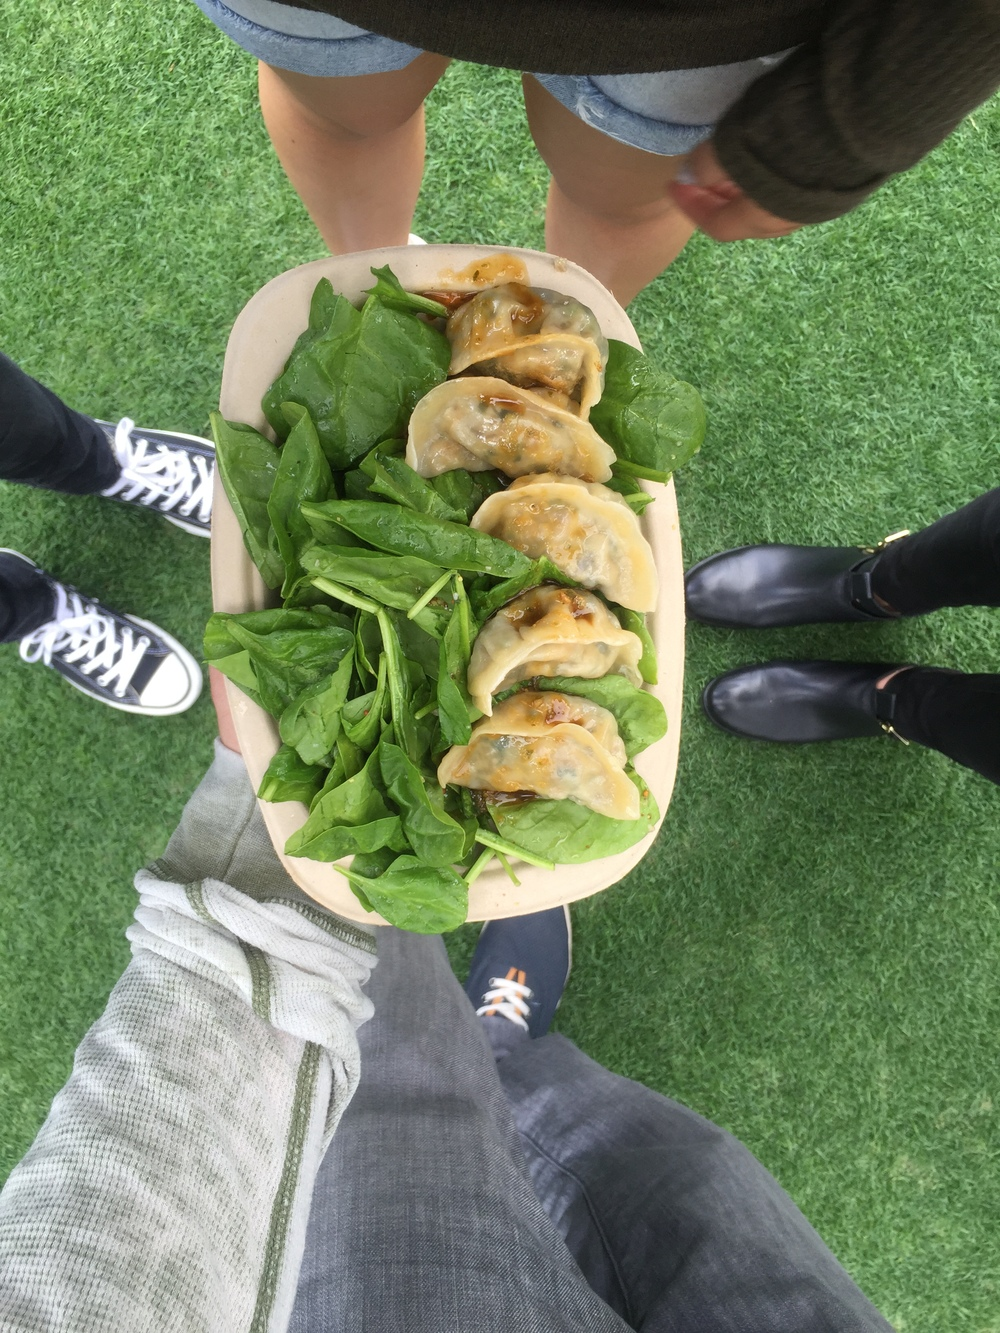 Bling Bling dumplings @blingdumplings Had these yummy veggie dumplings served on a bed of spinach, SO GOOD!!!